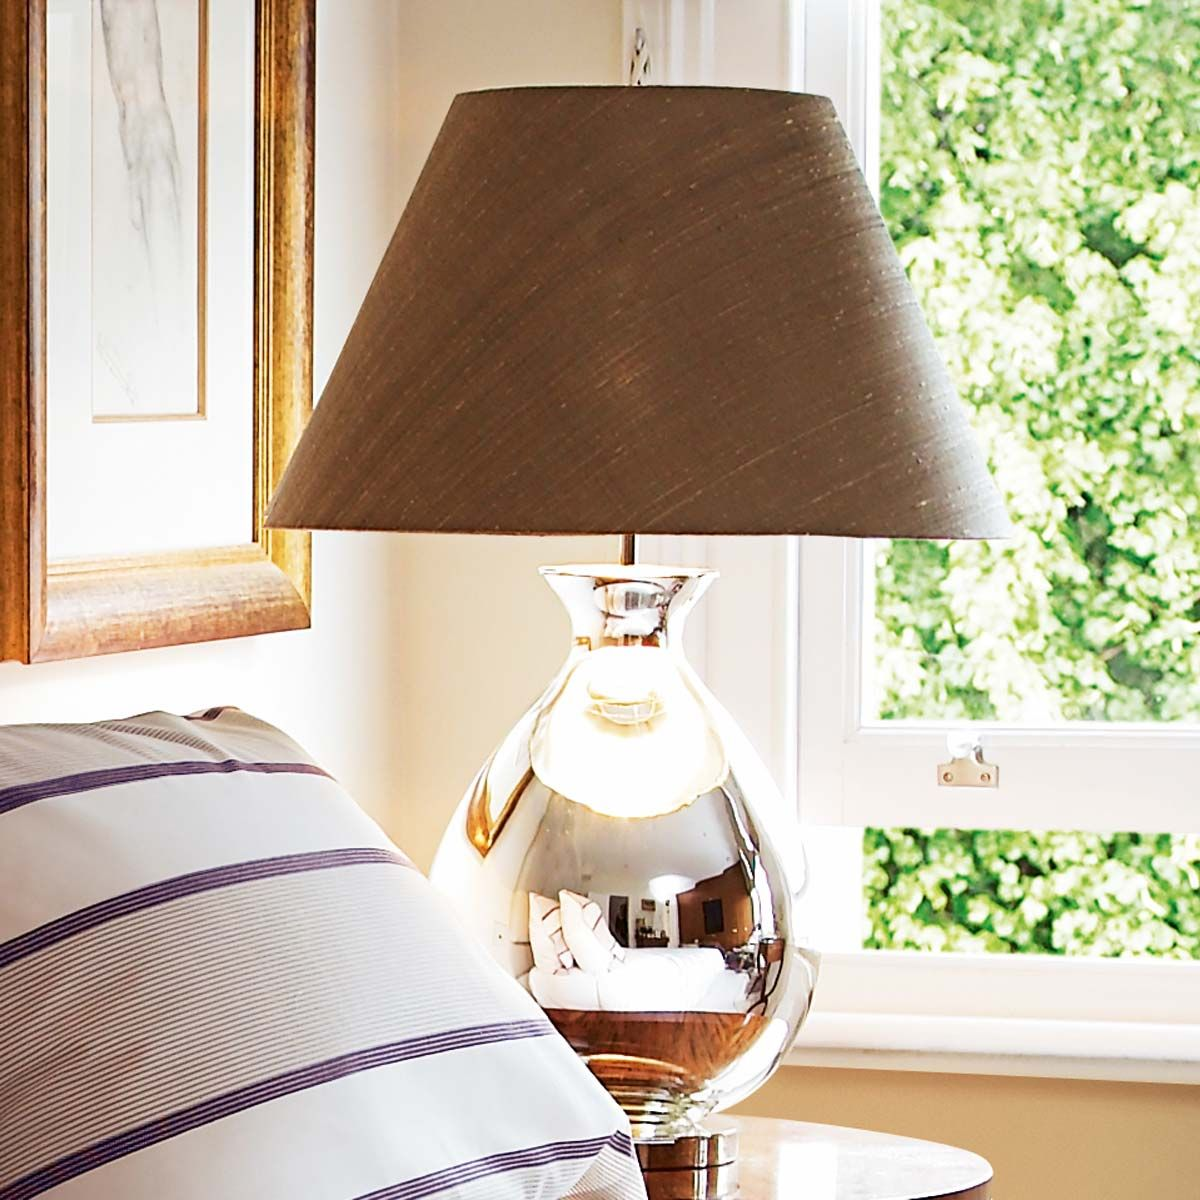 Bedside lamps click pic for josephinehome lighting design bedside lamps click pic for josephinehome mozeypictures Images